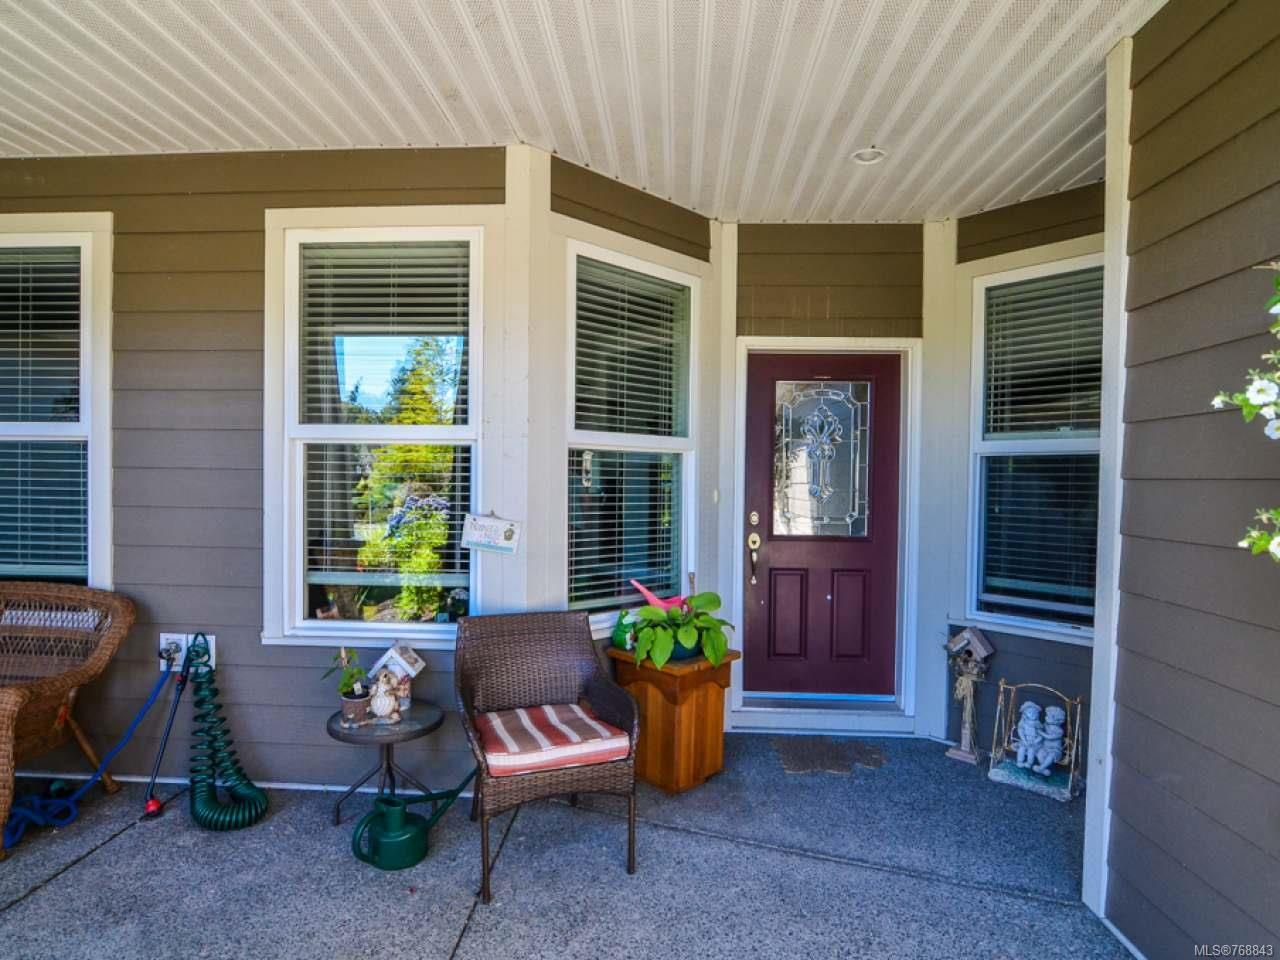 Photo 13: Photos: 15 346 Erickson Rd in CAMPBELL RIVER: CR Willow Point Row/Townhouse for sale (Campbell River)  : MLS®# 768843